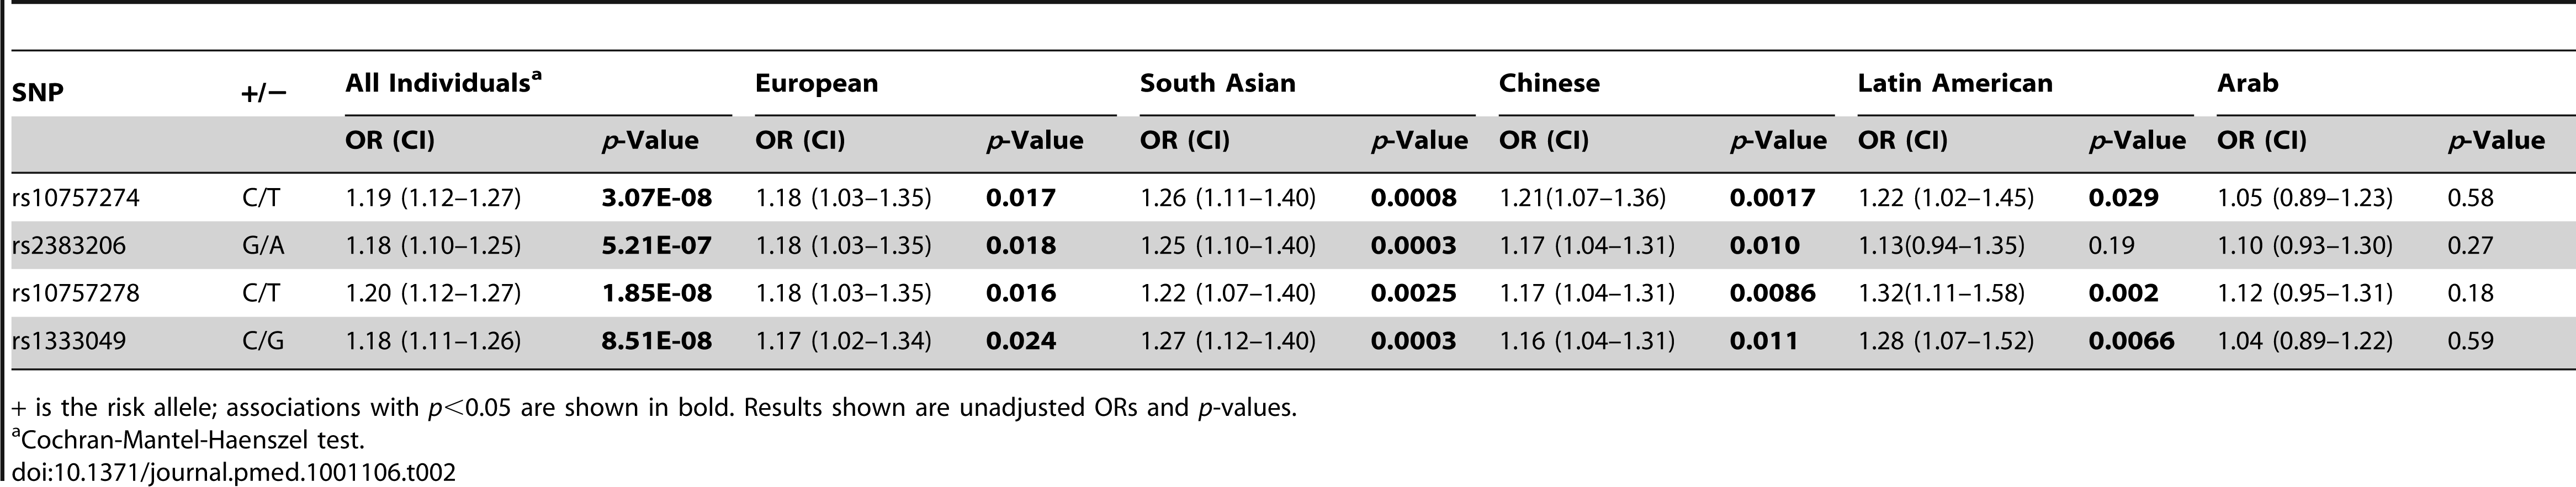 Association results of Chromosome 9p21 SNPs and acute myocardial infarction.